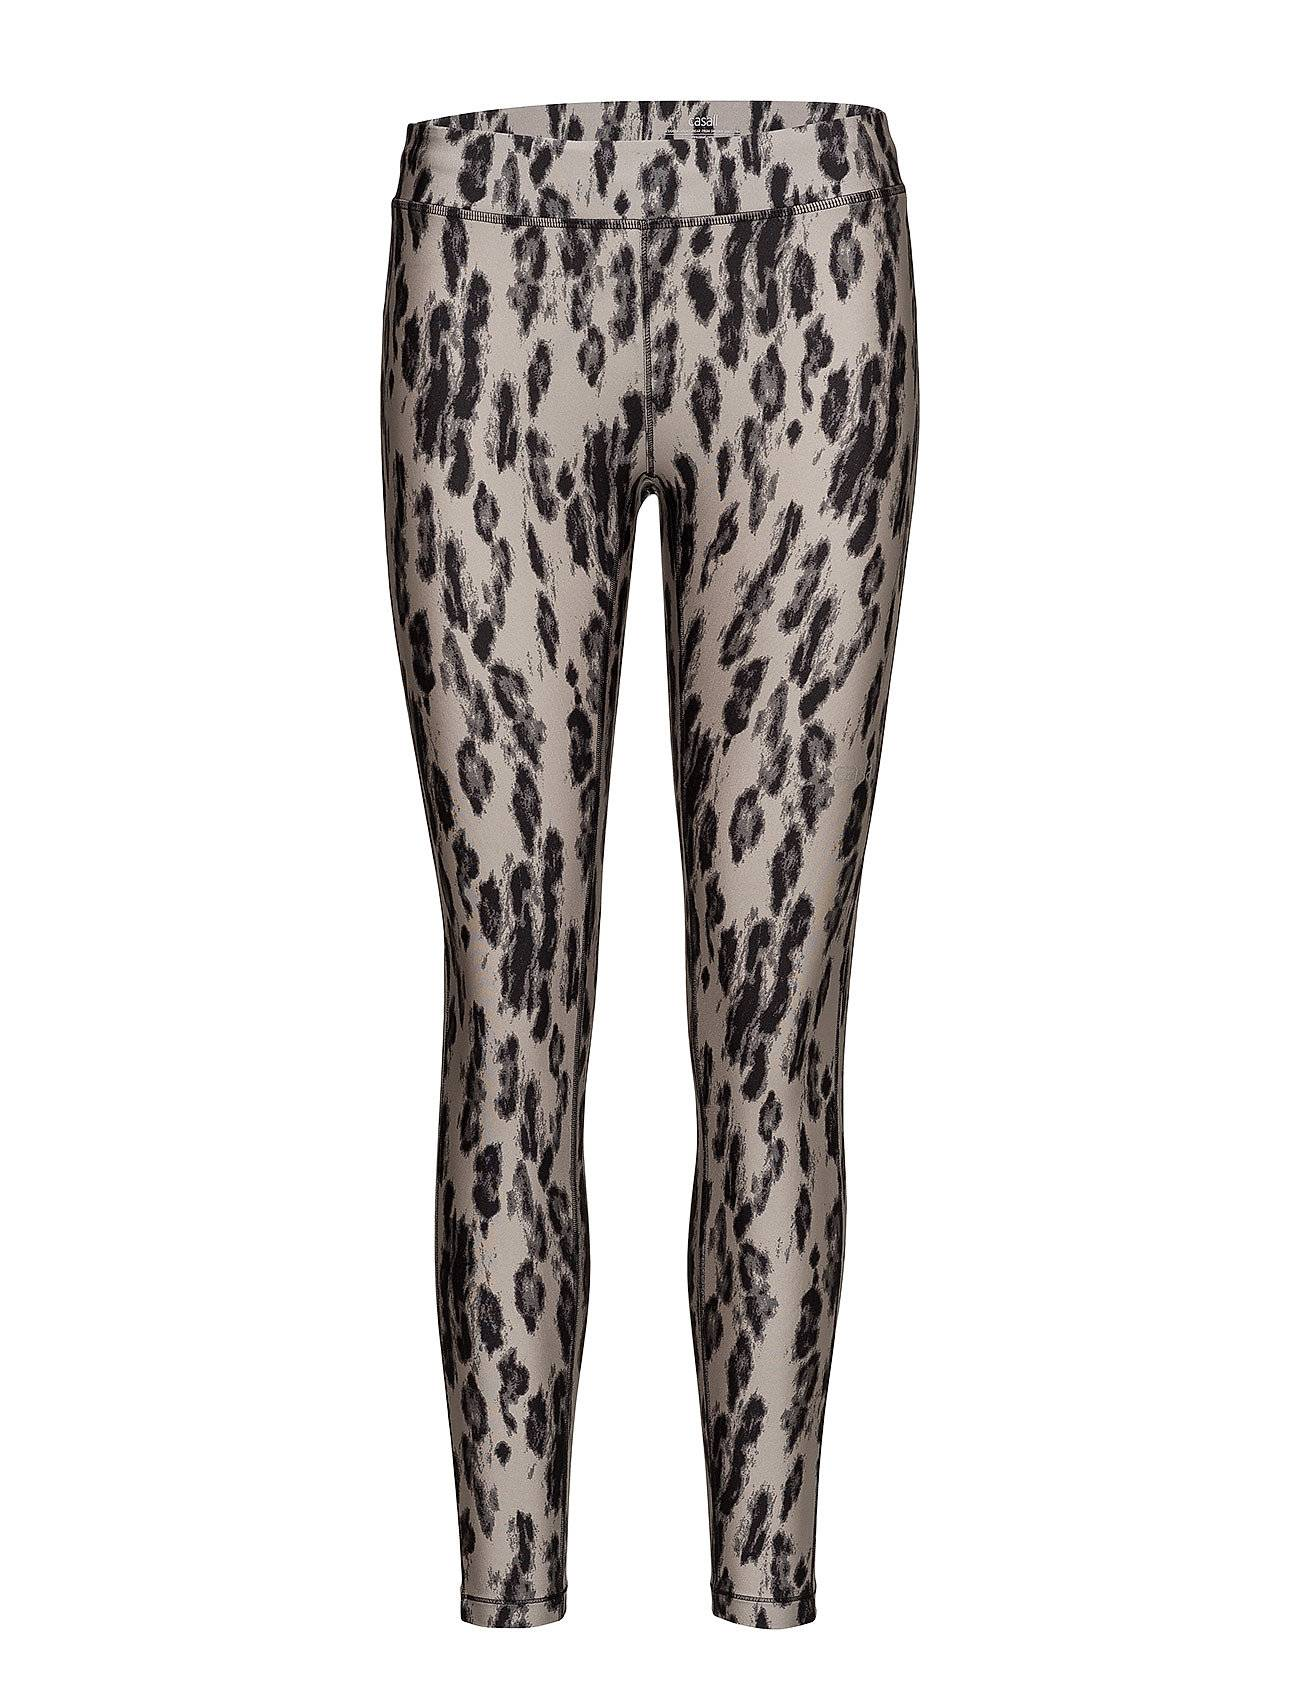 Casall Fuzzy Print 7/8 Tights